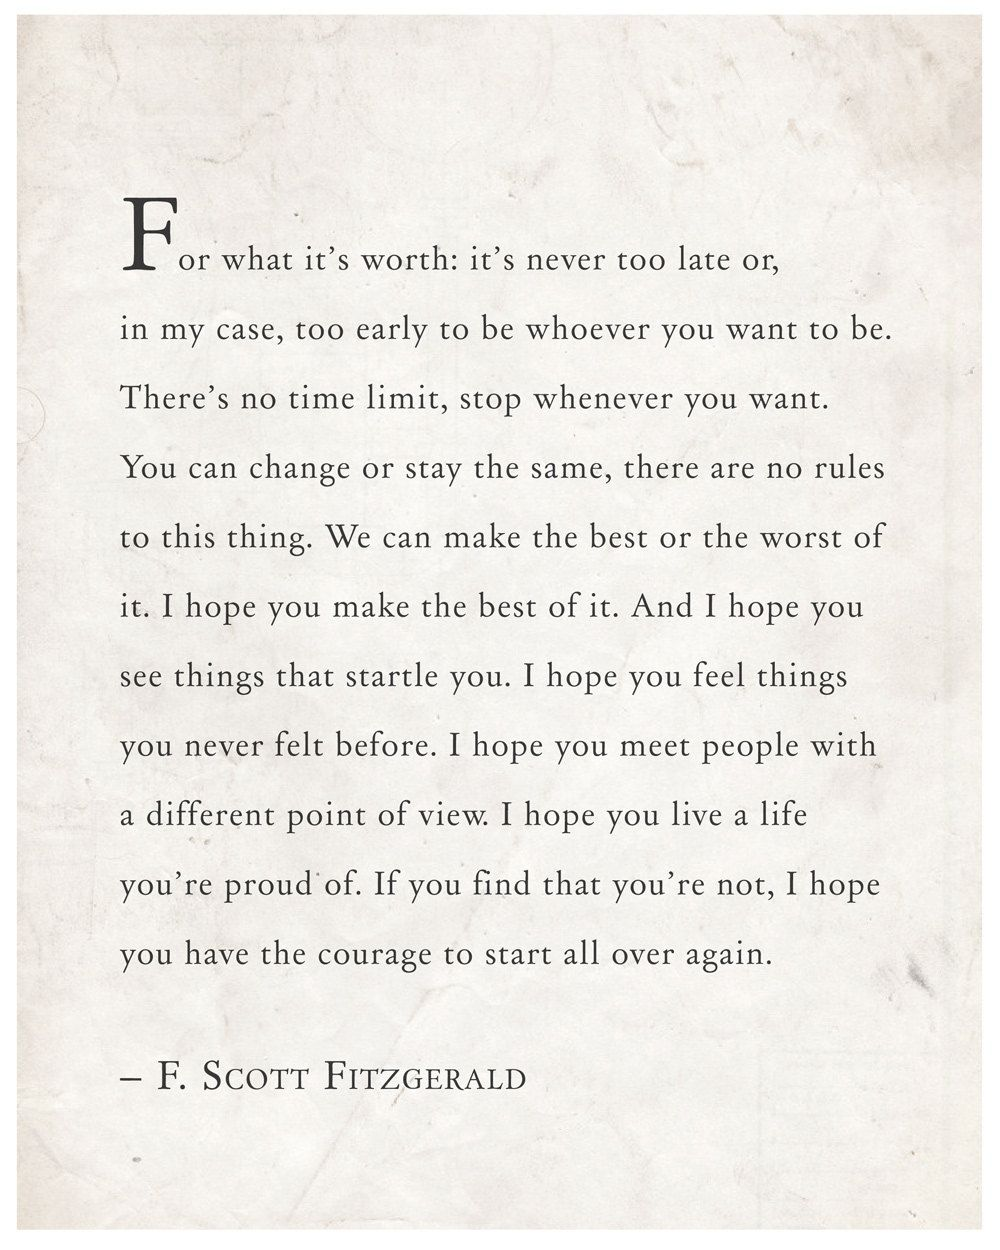 F Scott Fitzgerald Love Quote Fscott Fitzgerald Wise Words That Read For What It's Worth